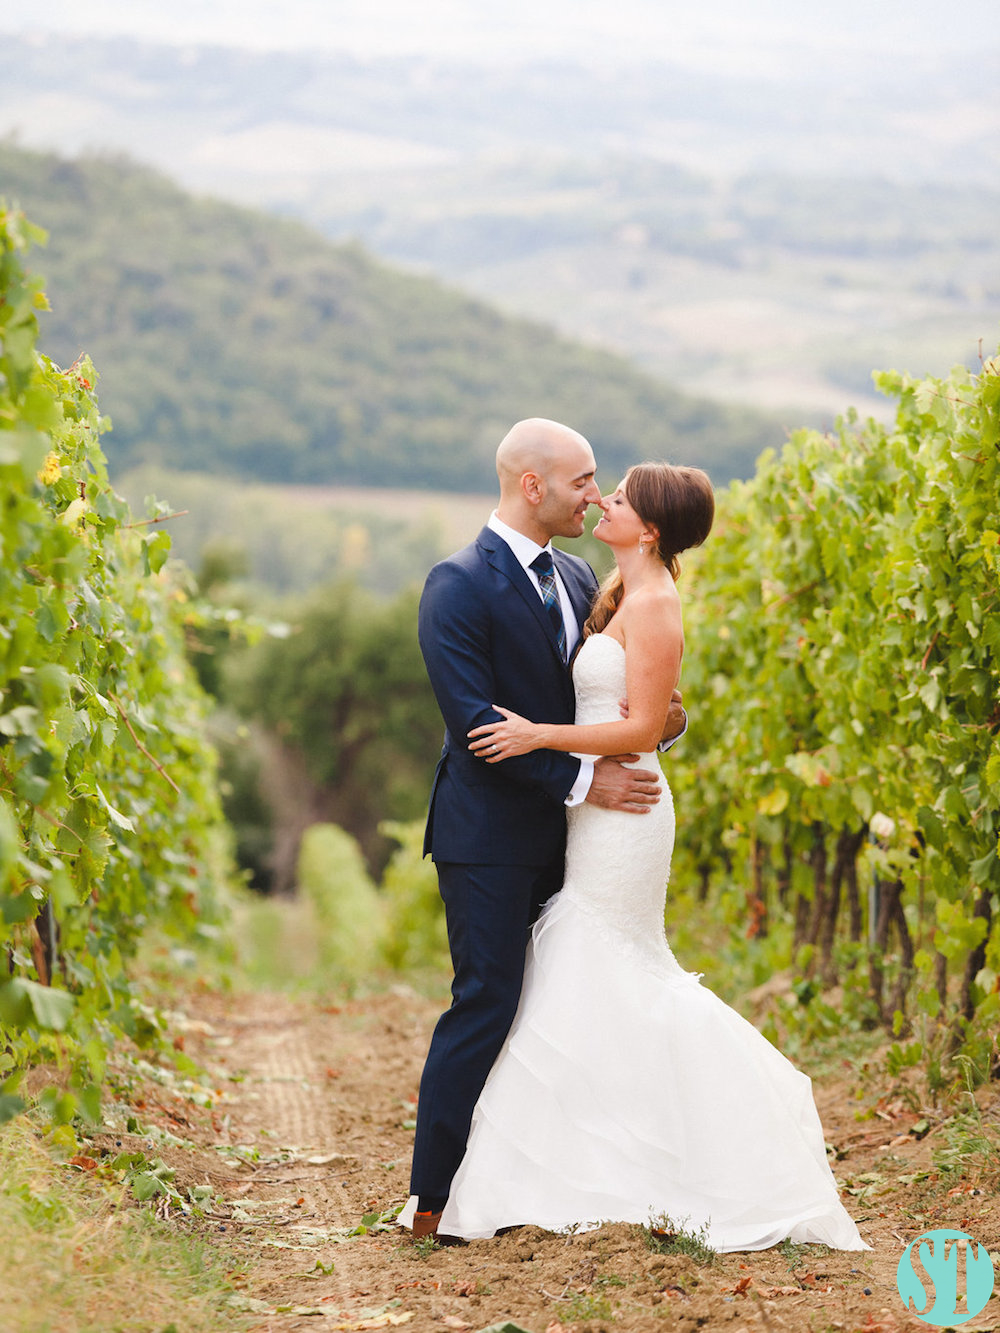 148Wedding in Florence Chianti